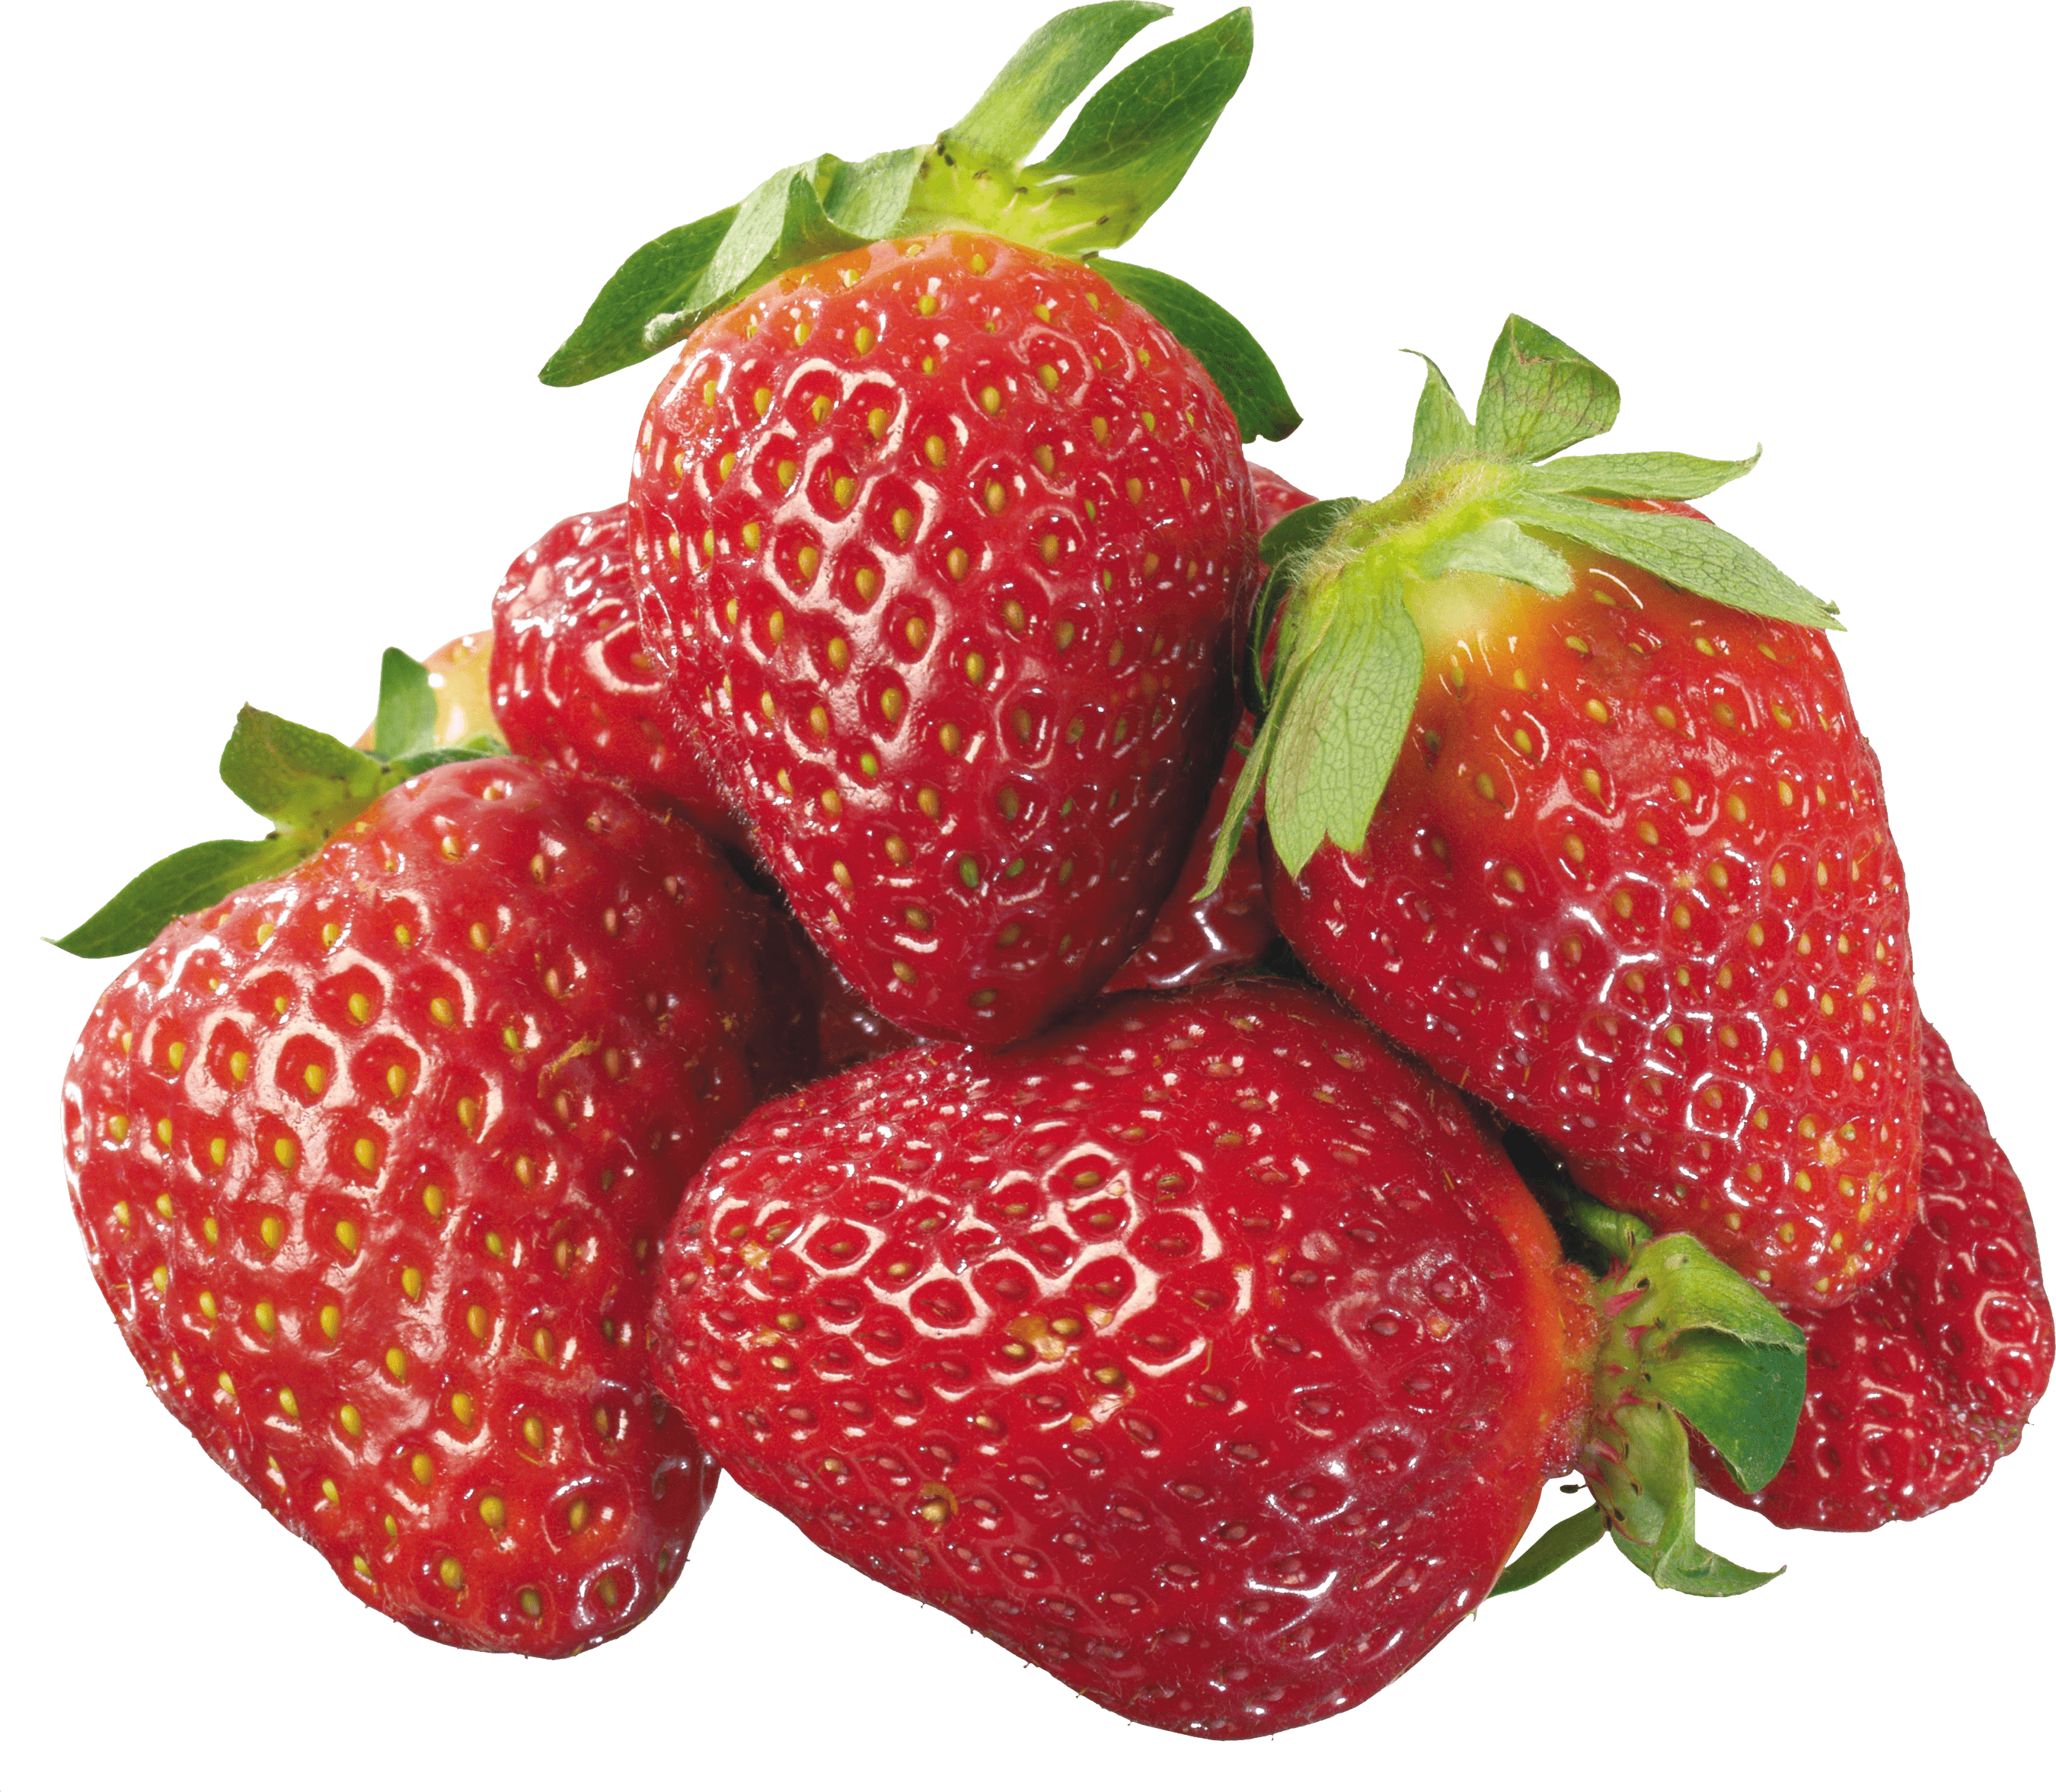 Transparent png images stickpng. Strawberries clipart clear background